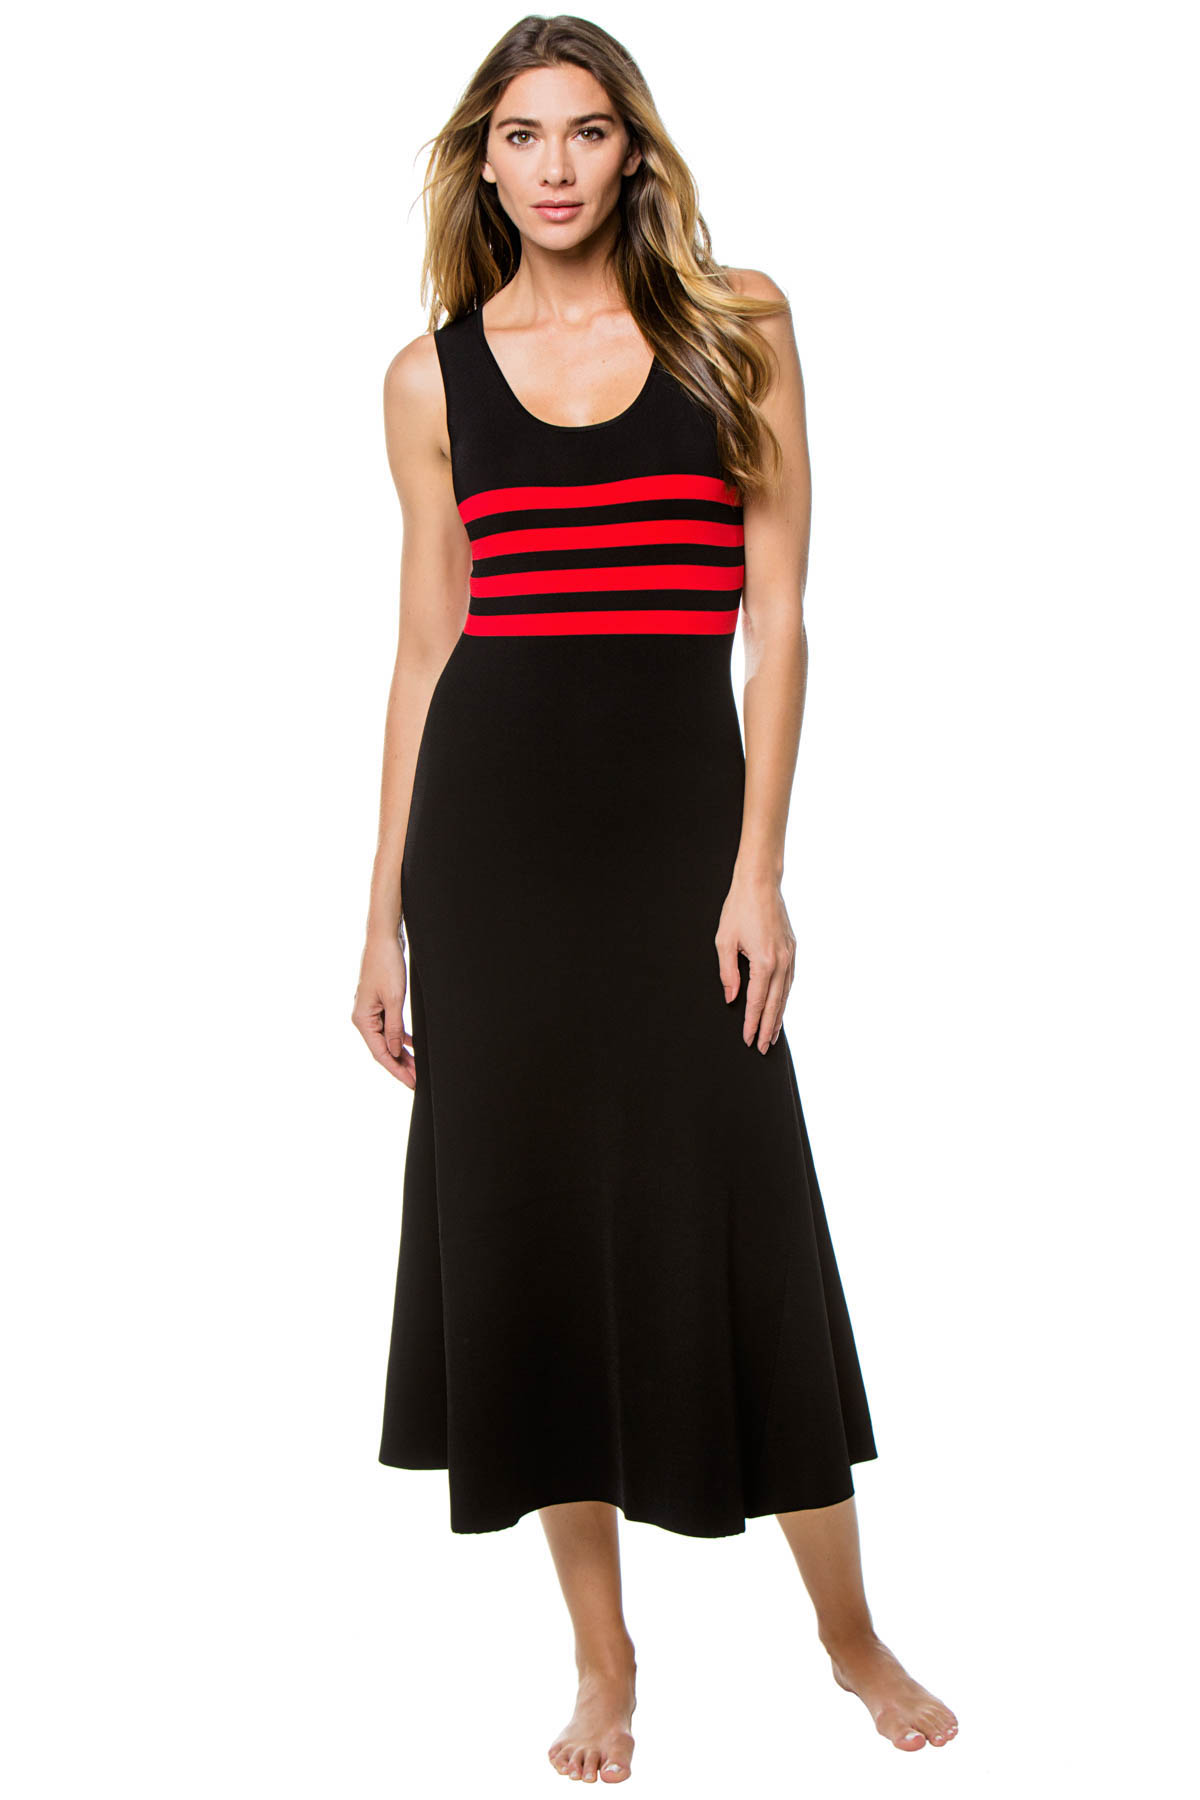 Riveria Ribbed Knit Mid-Length Dress - Red/Black 1